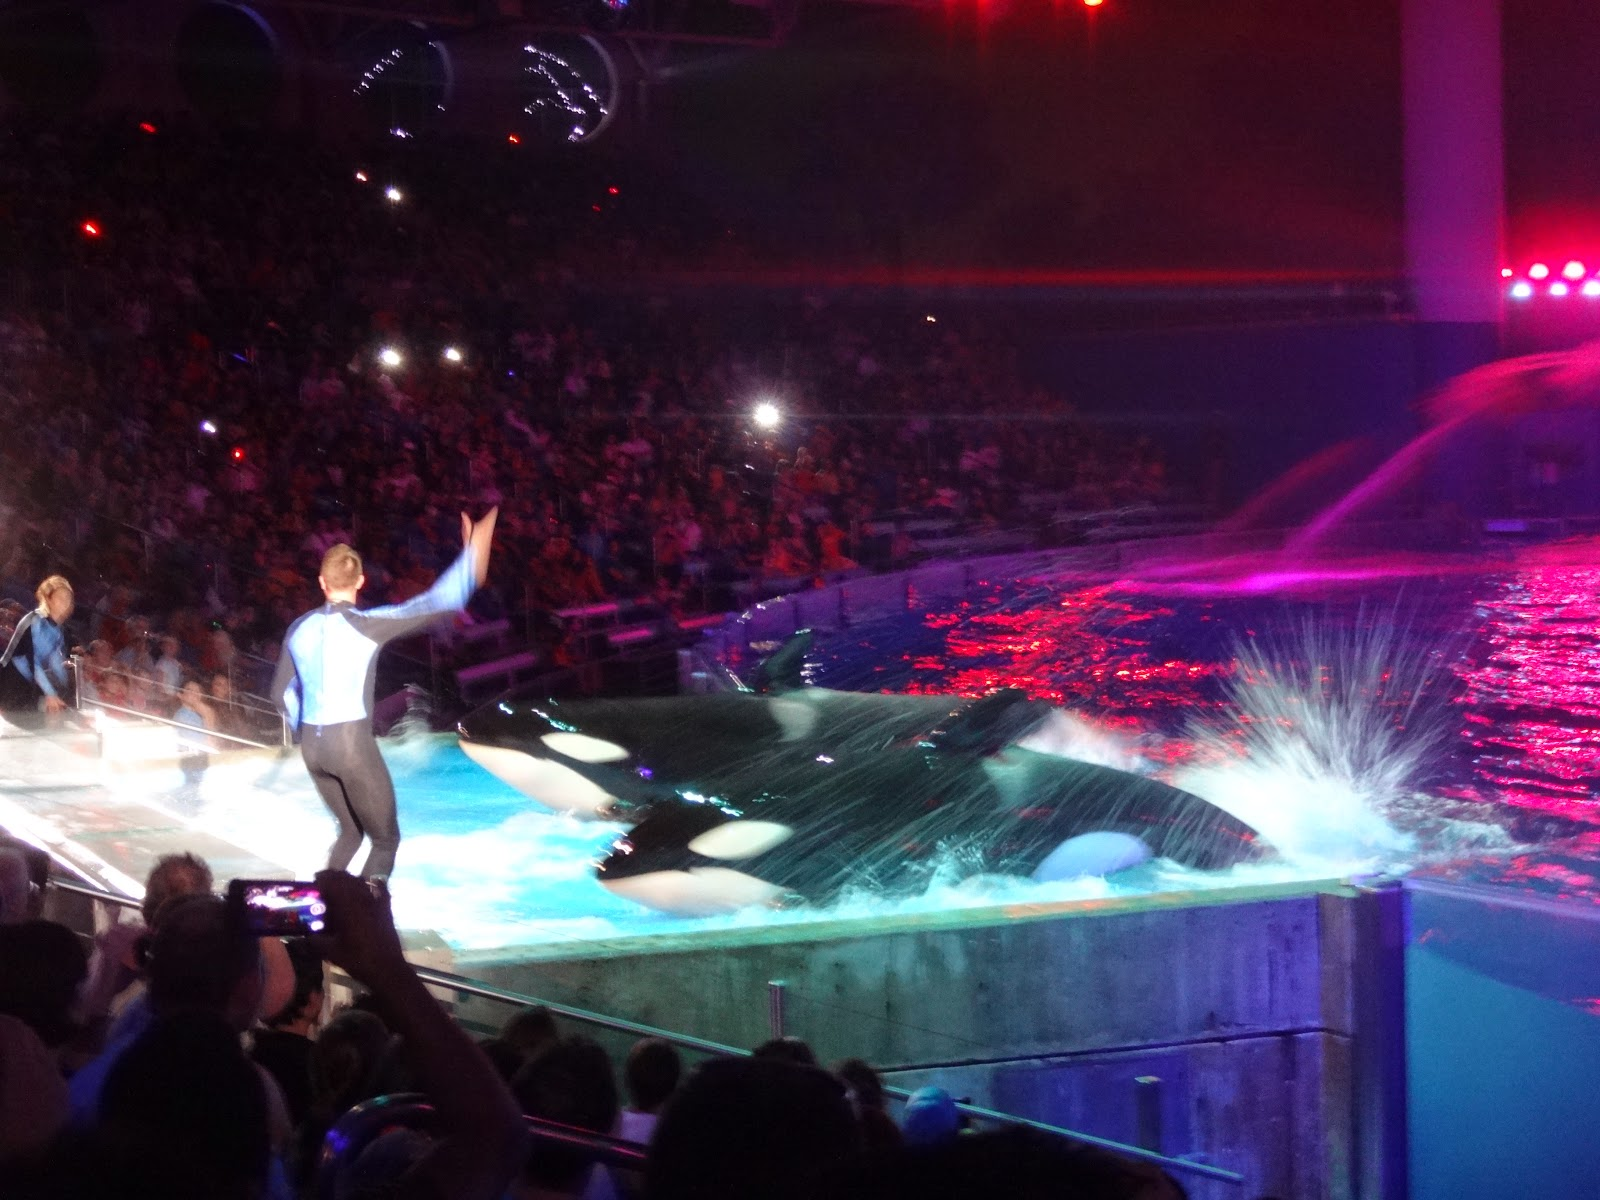 shamu - miracles - parque sea world - orlando, florida